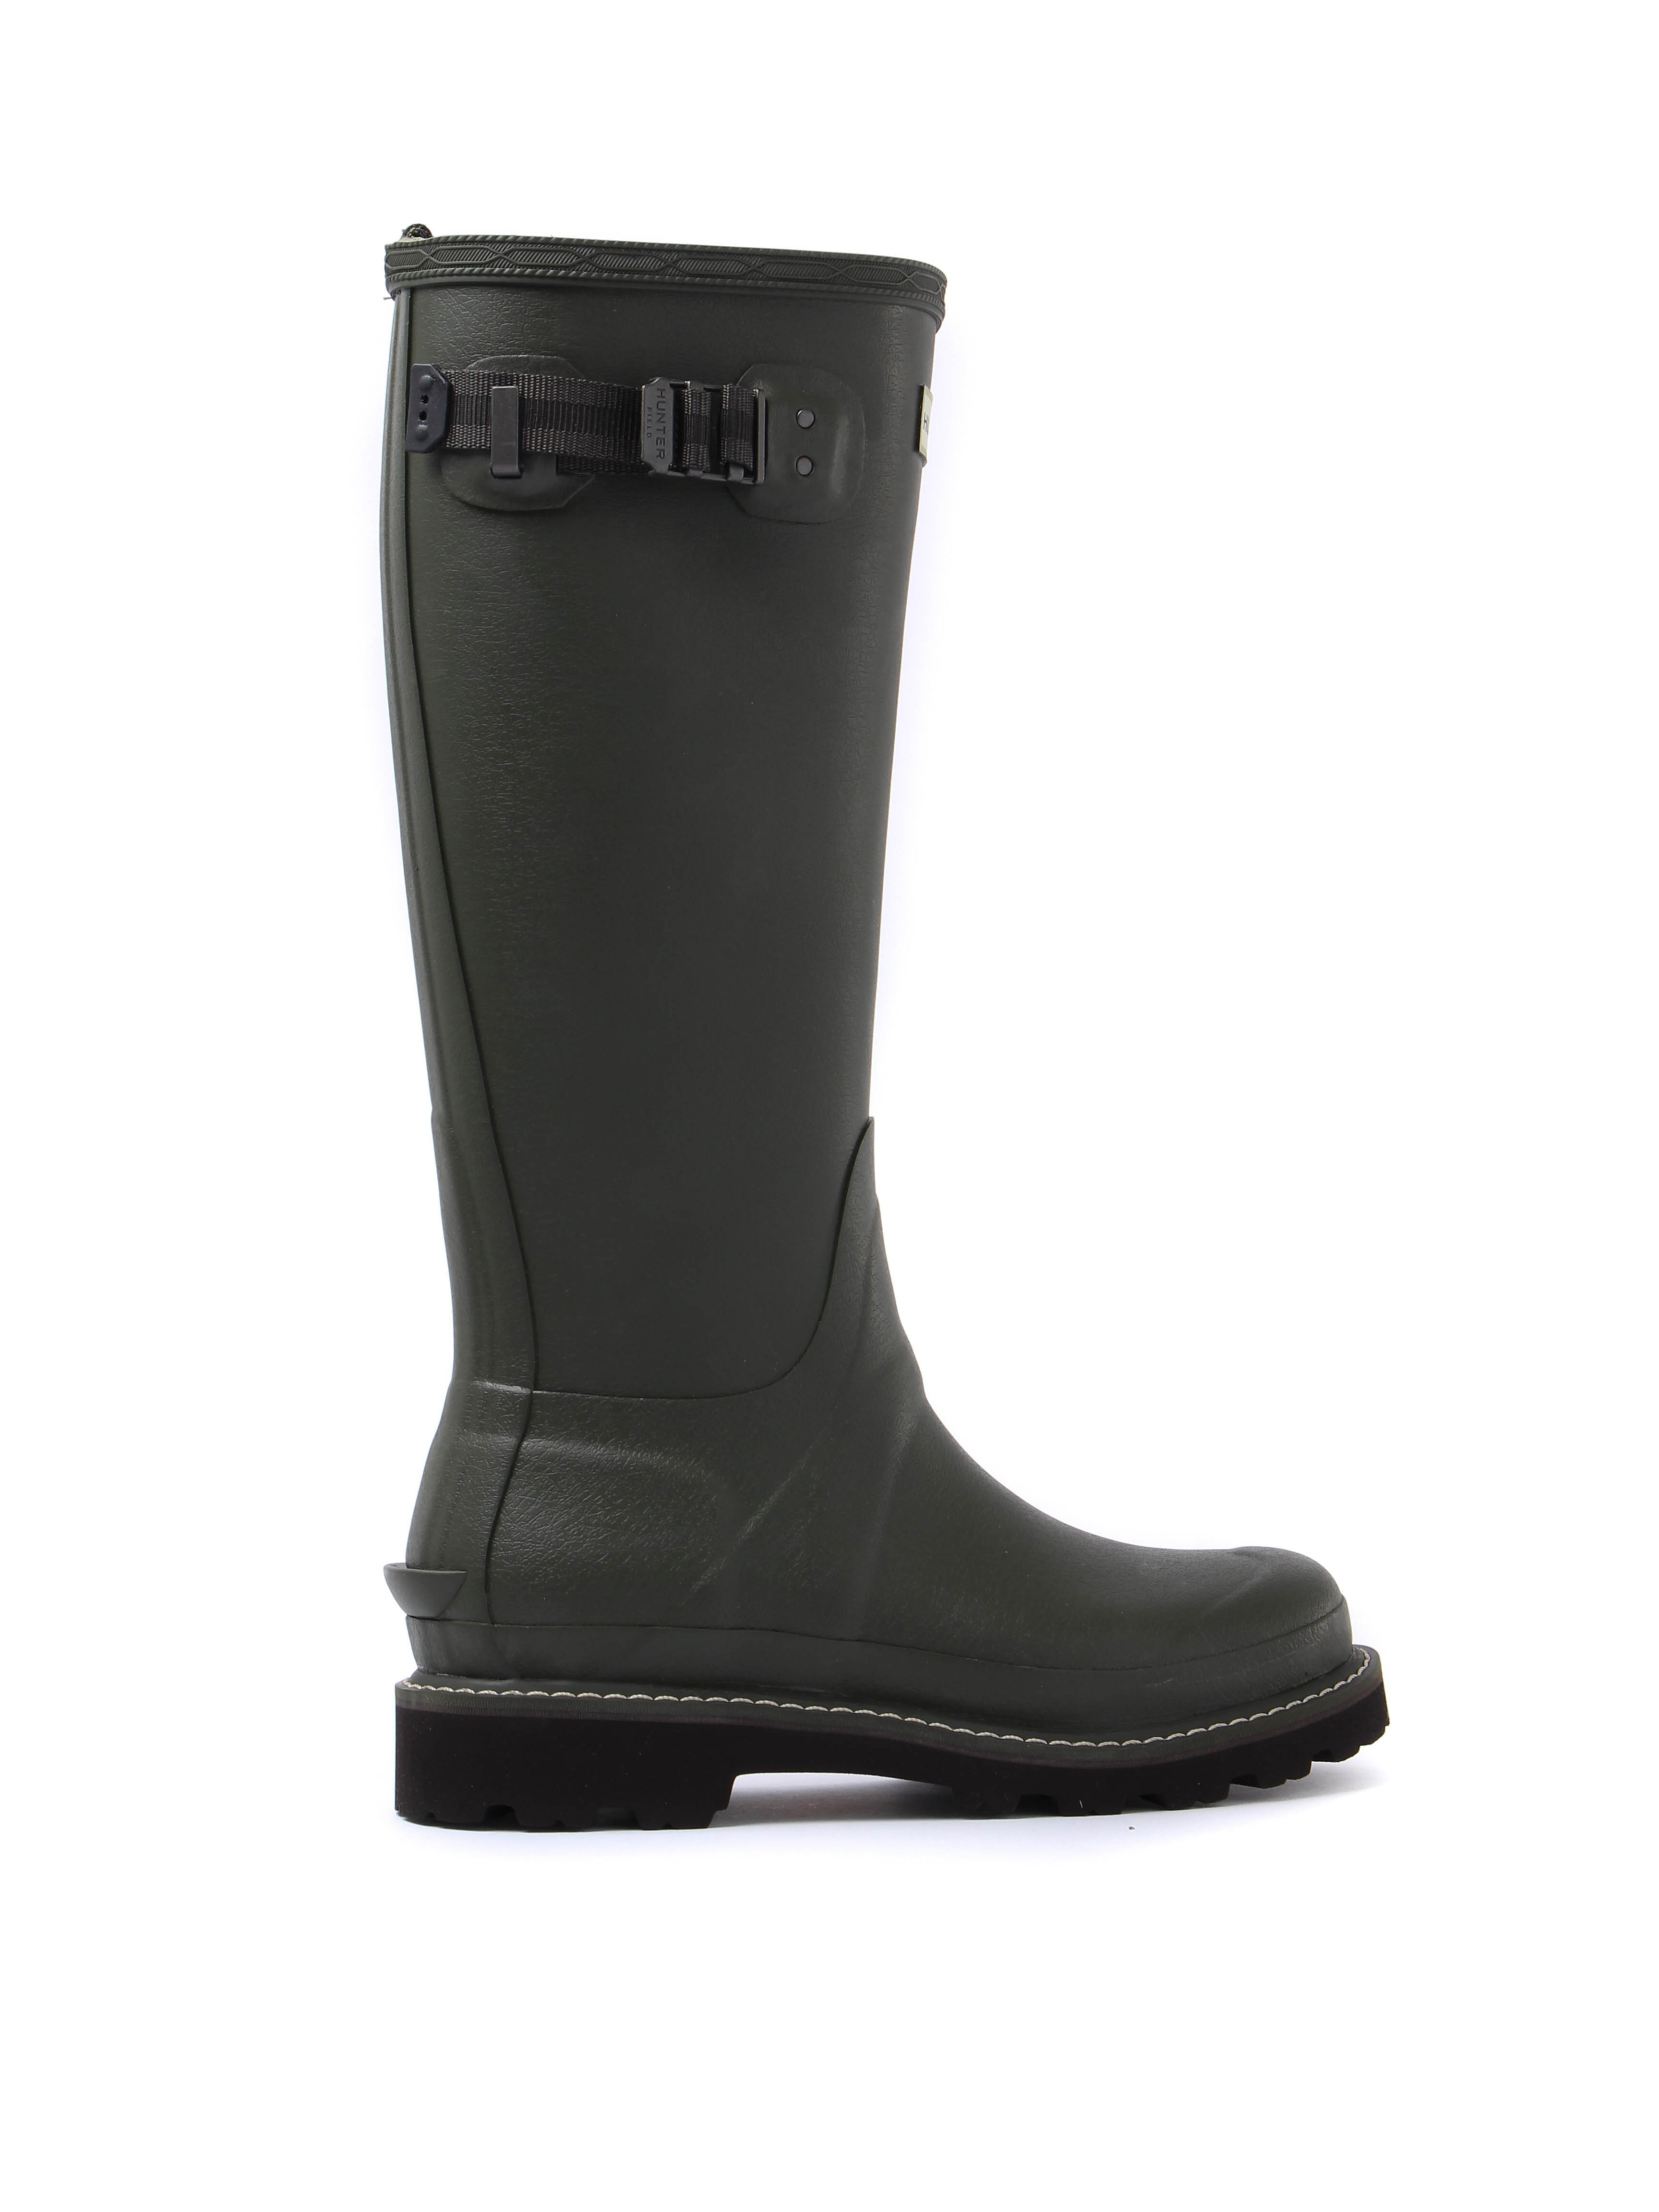 Hunter Wellies Women's Balmoral II Poly Lining Wellington Boots - Dark Olive